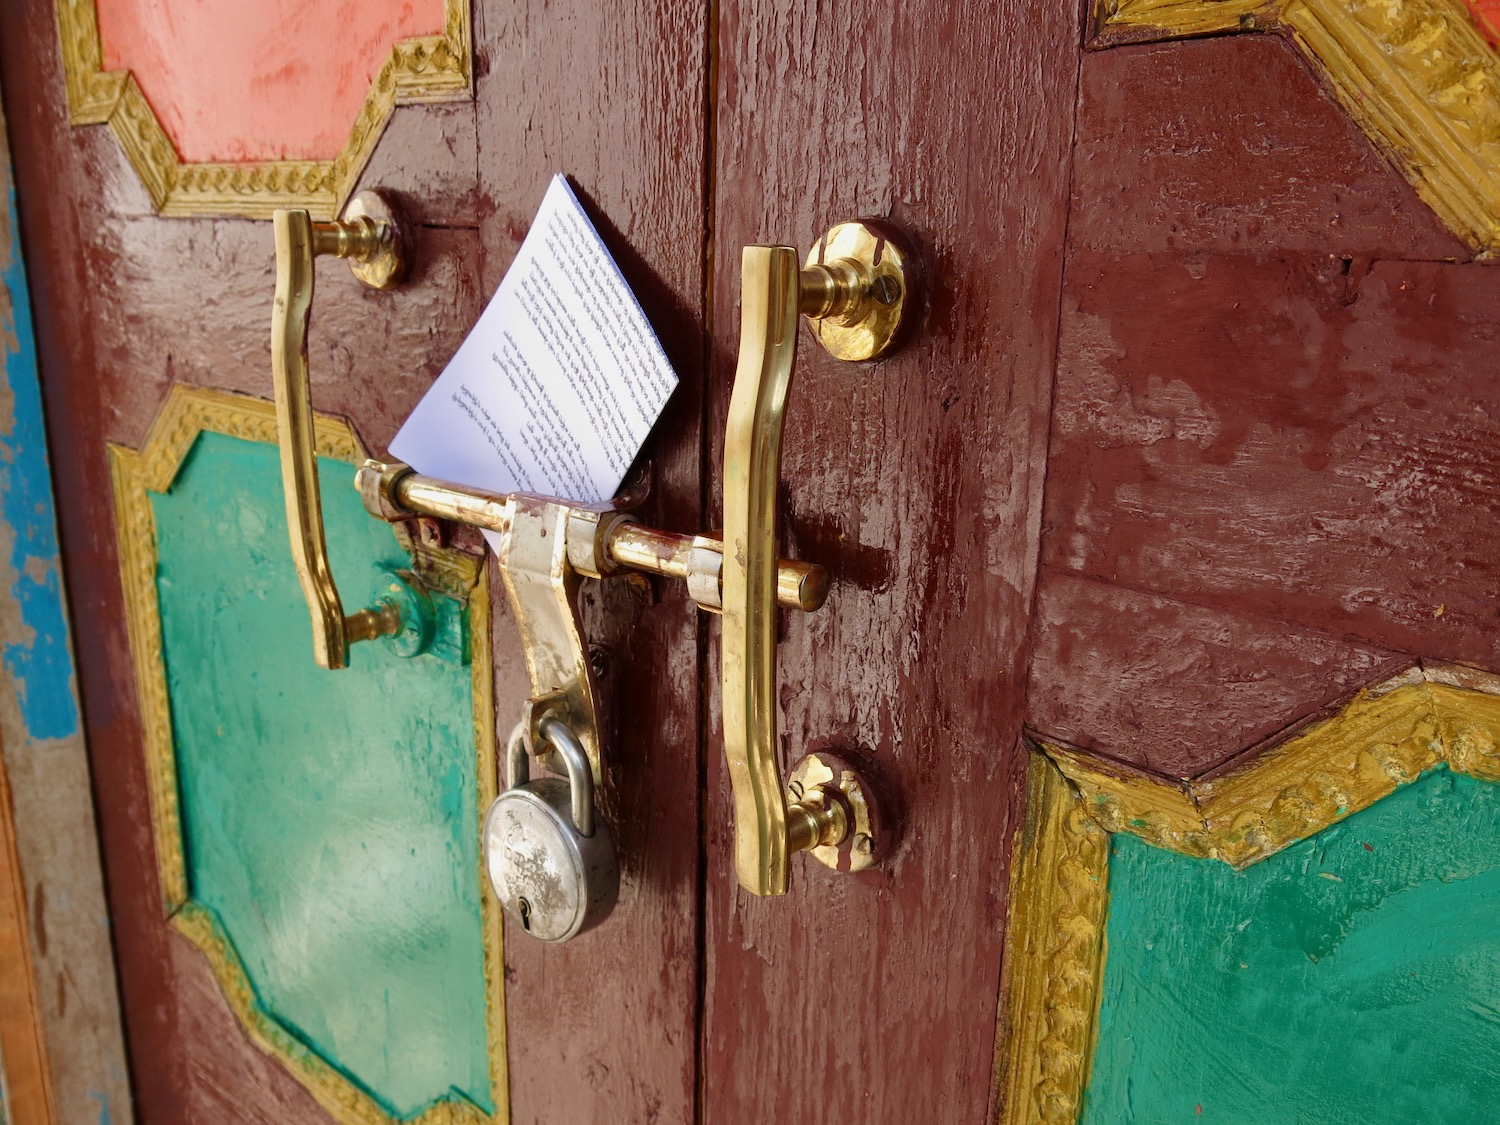 Ladakhi Scripture portions attached to the front door of a remote Buddhist Monastery high up in the Indian Himalaya (2014).